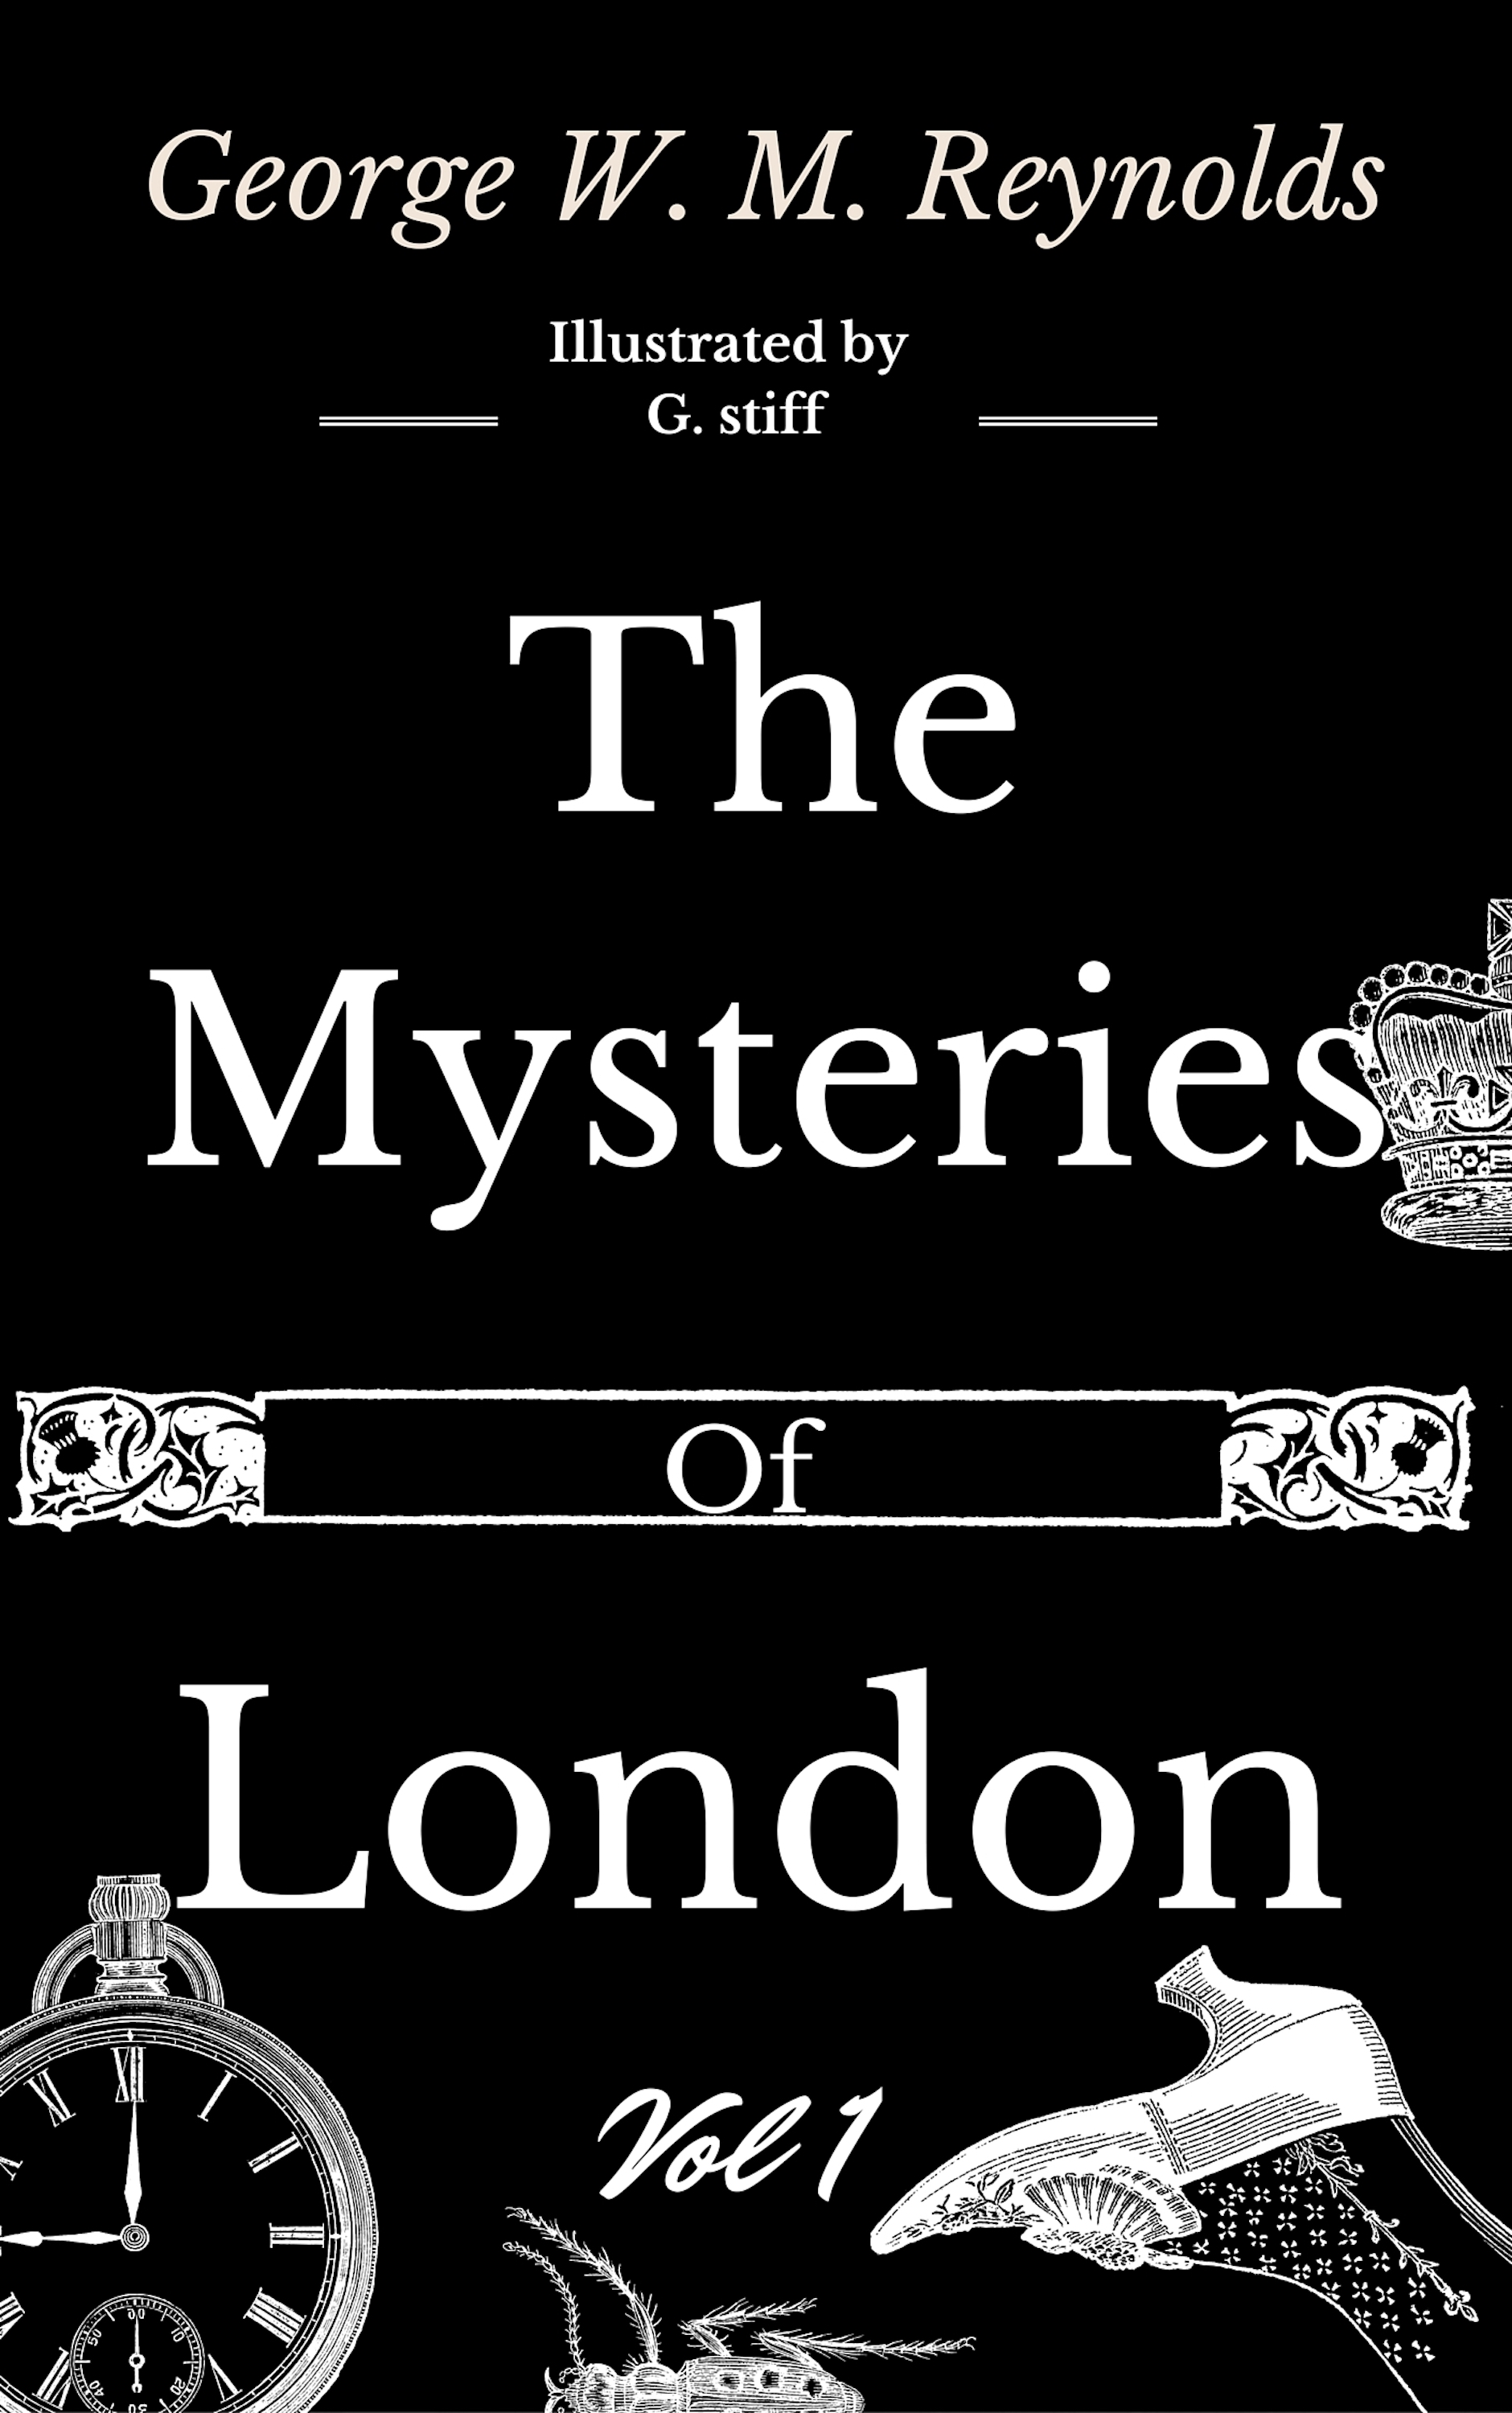 George W. M. Reynolds The Mysteries of London Vol 1 of 4